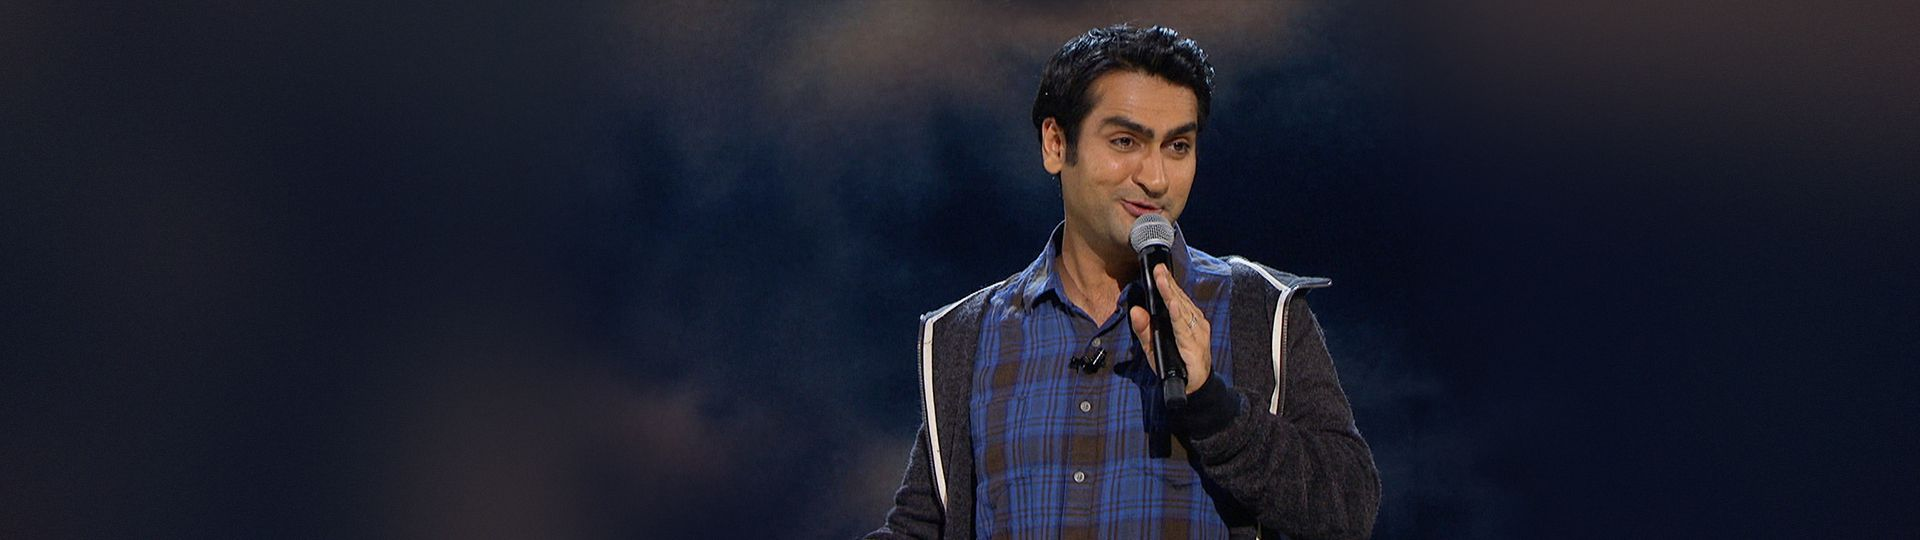 kumail nanjianikumail nanjiani instagram, kumail nanjiani wife, kumail nanjiani walking dead, kumail nanjiani titanfall, kumail nanjiani voice acting, kumail nanjiani and emily v. gordon, kumail nanjiani mass effect, kumail nanjiani twitter, kumail nanjiani stand up, kumail nanjiani wedding, kumail nanjiani imdb, kumail nanjiani, kumail nanjiani podcast, kumail nanjiani x files, kumail nanjiani portlandia, kumail nanjiani net worth, kumail nanjiani emily gordon, kumail nanjiani adventure time, kumail nanjiani conan, kumail nanjiani john mayer